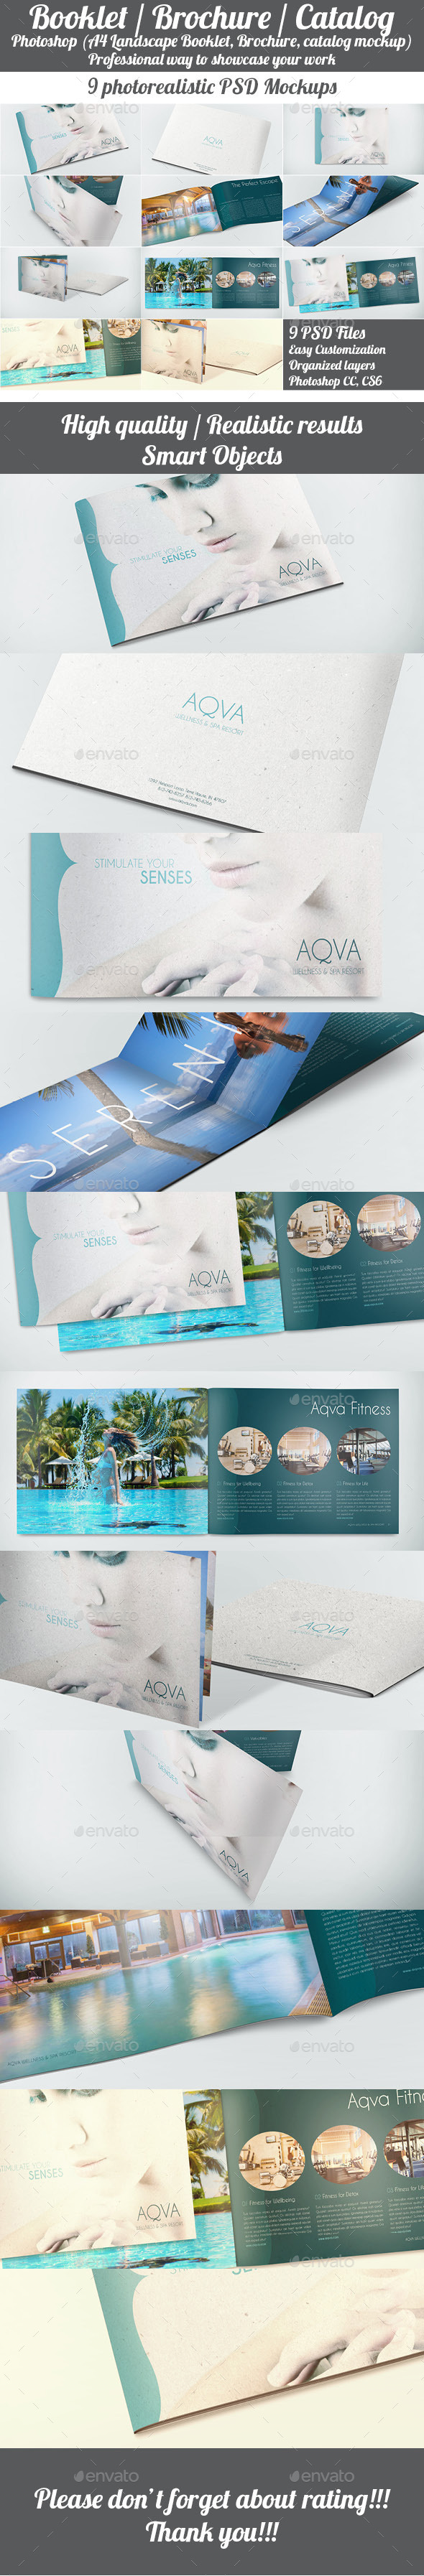 GraphicRiver Landscape Booklet Brochure Catalog Mockup 11330689